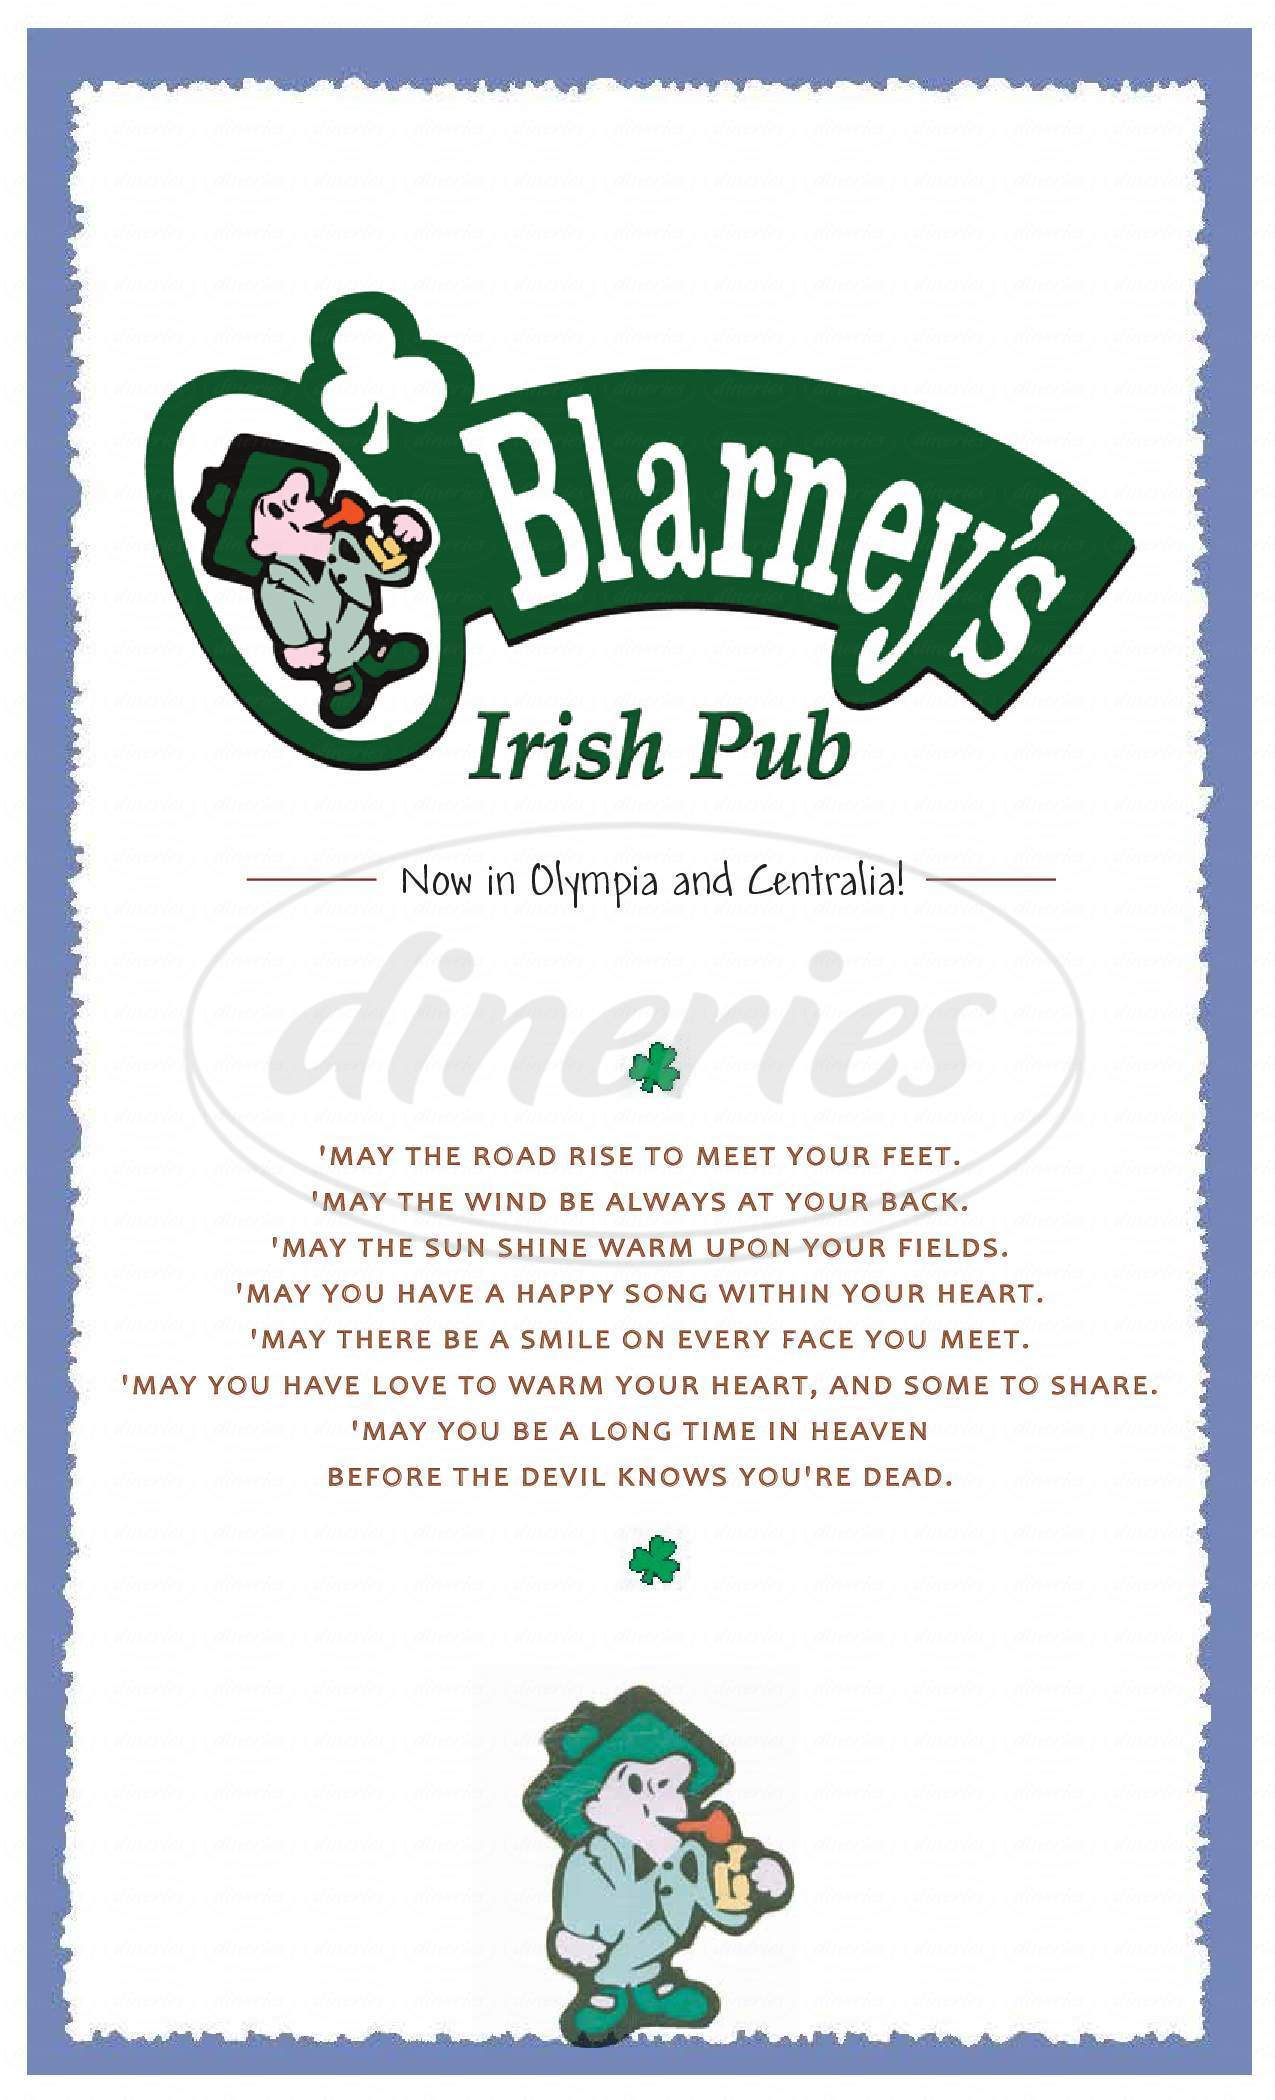 menu for O'Blarney's Irish Pub